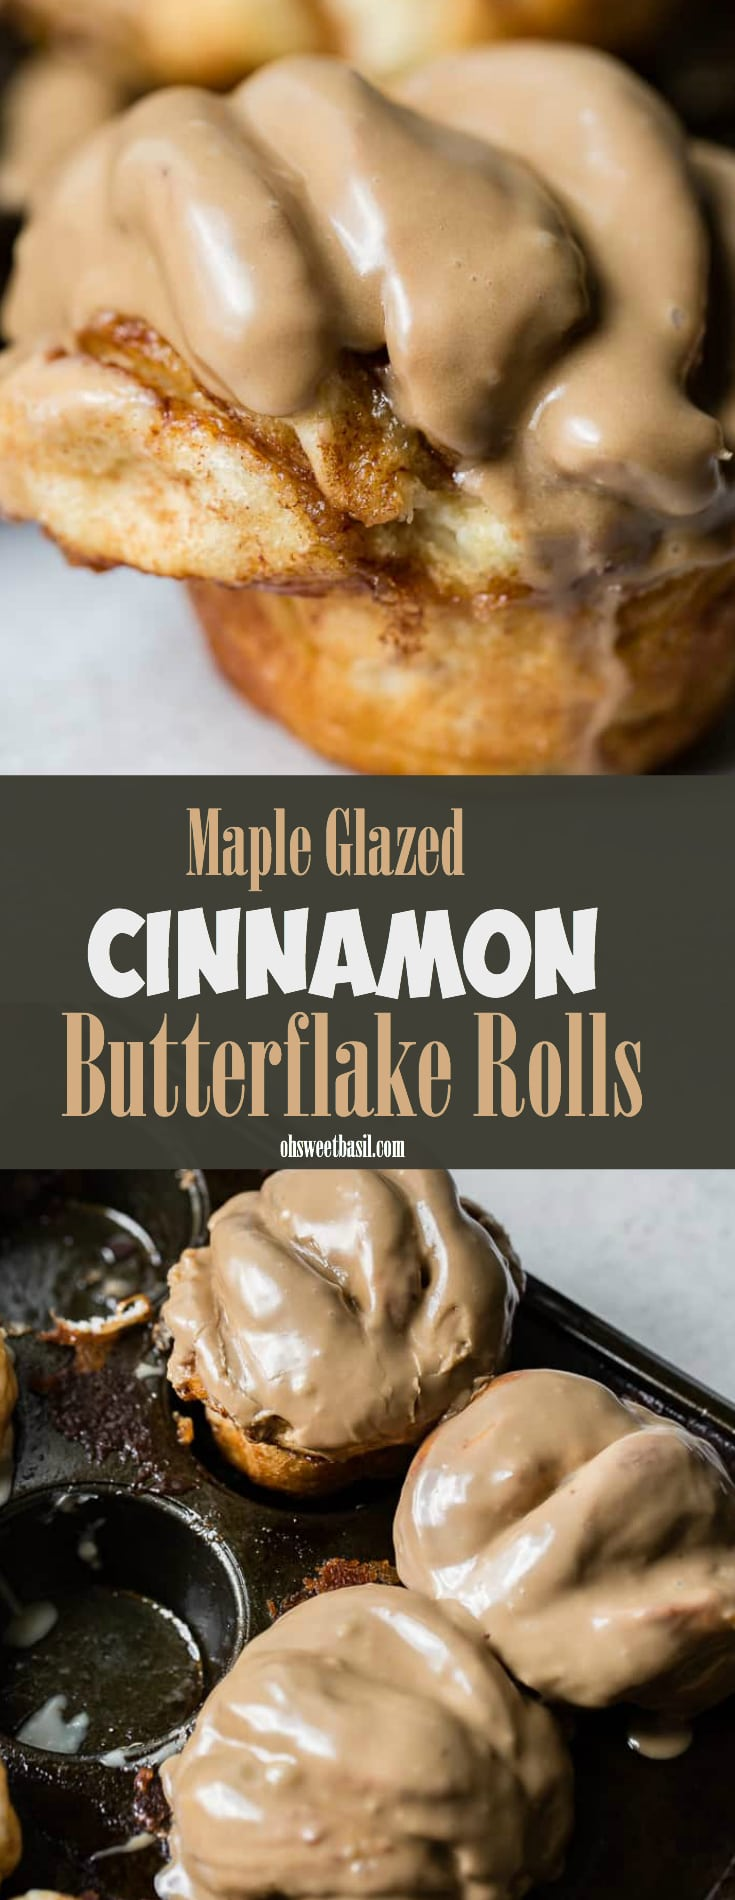 A close up of a cinnamon butterflake roll with maple glaze